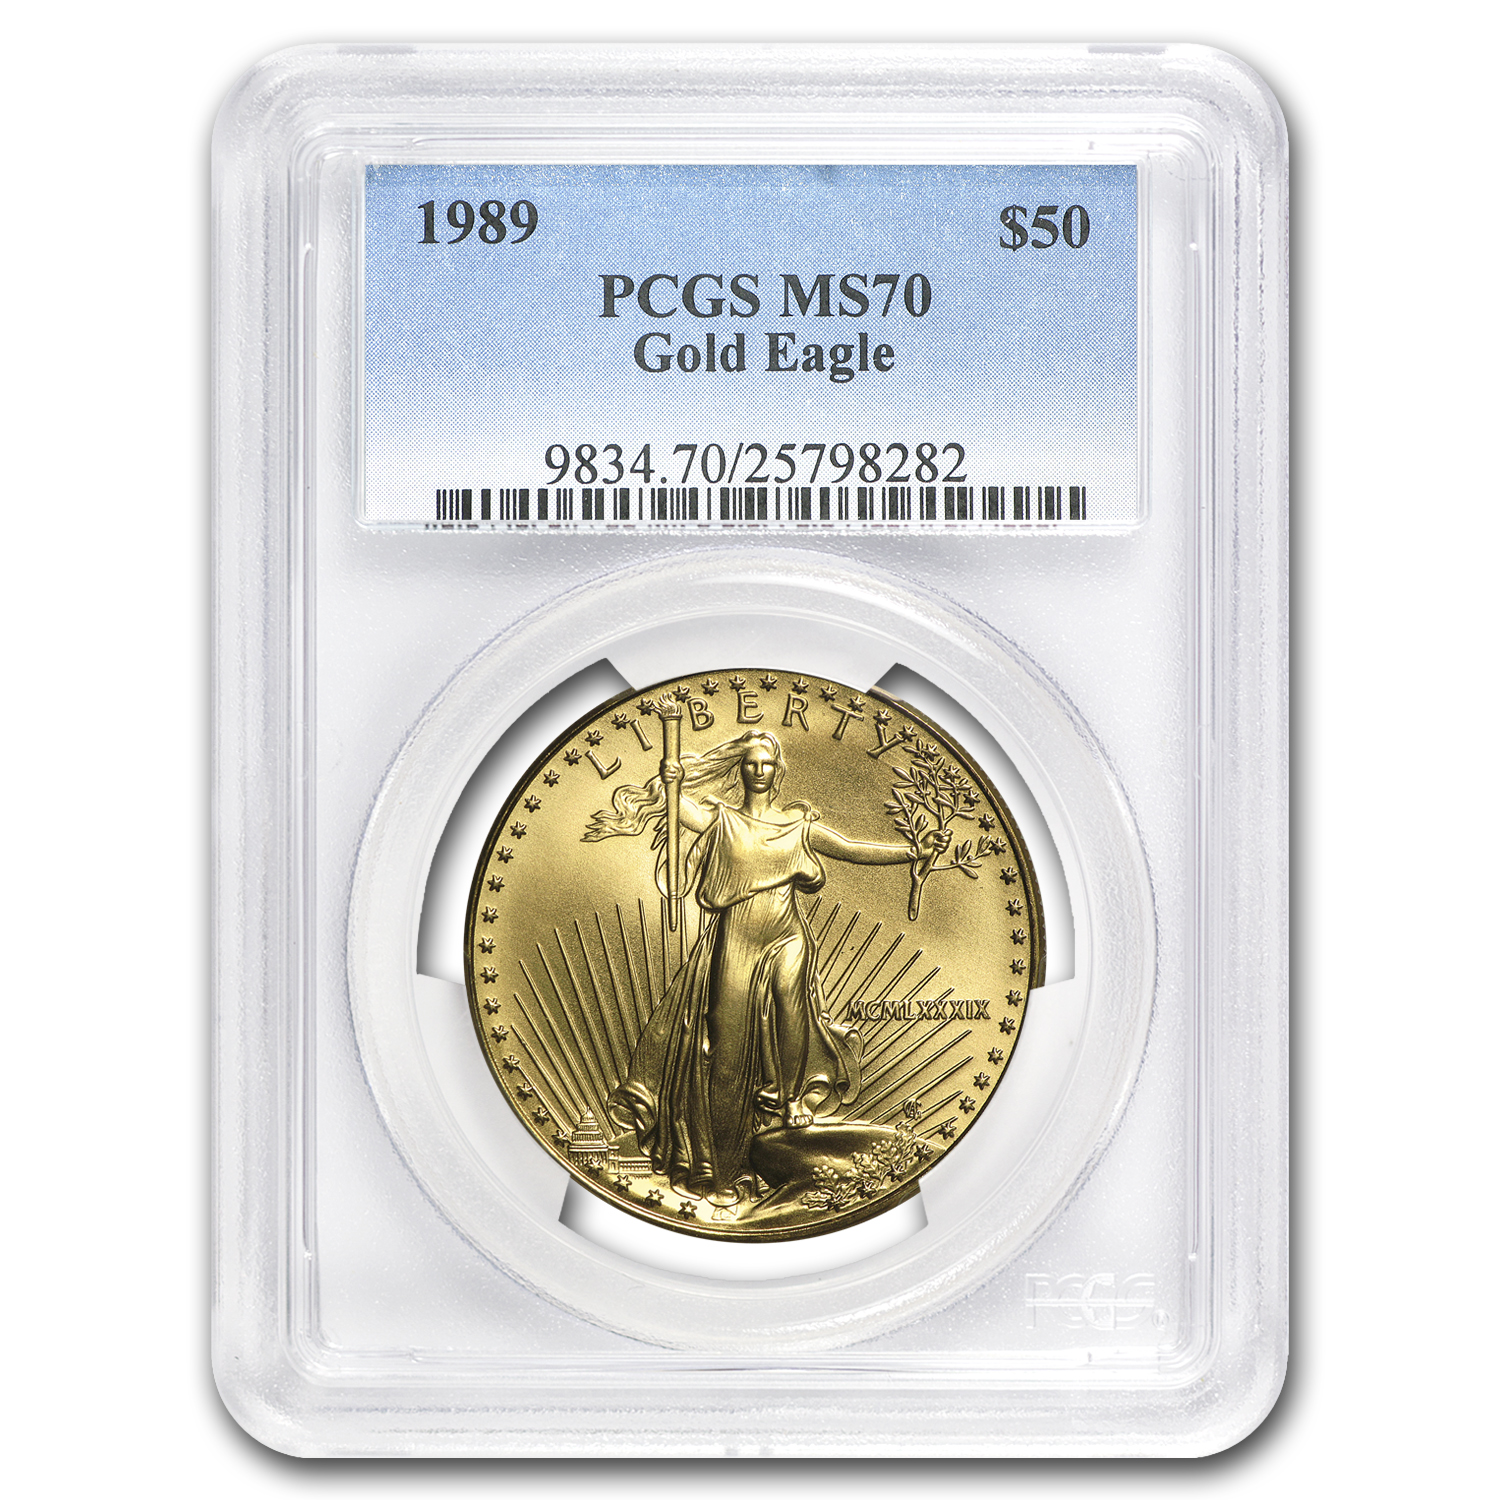 1989 1 oz Gold American Eagle MS-70 PCGS (Registry Set)